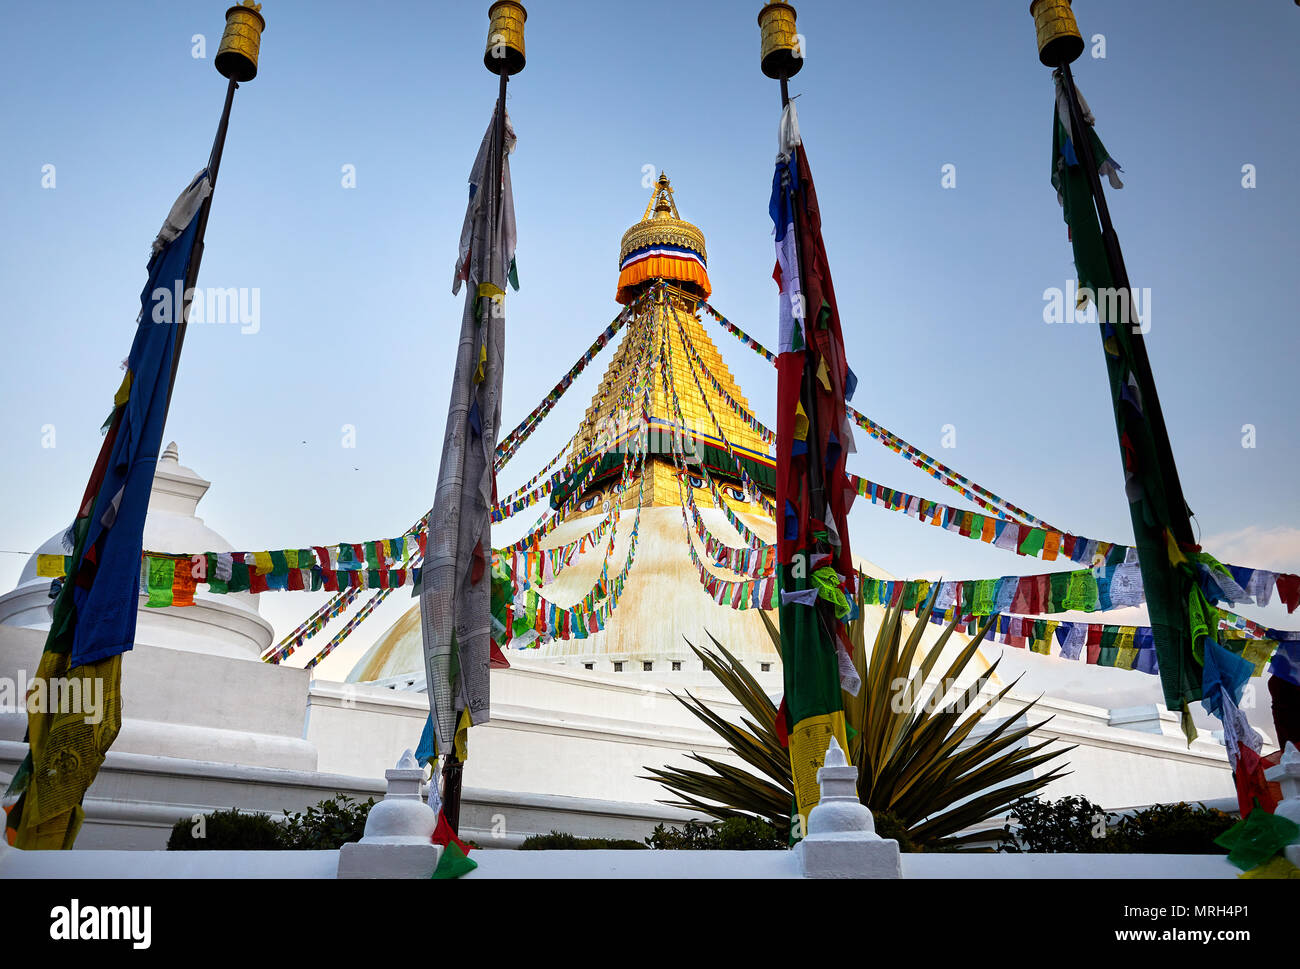 Bodnath Buddhist Stupa with prayer flags in Kathmandu - Stock Image